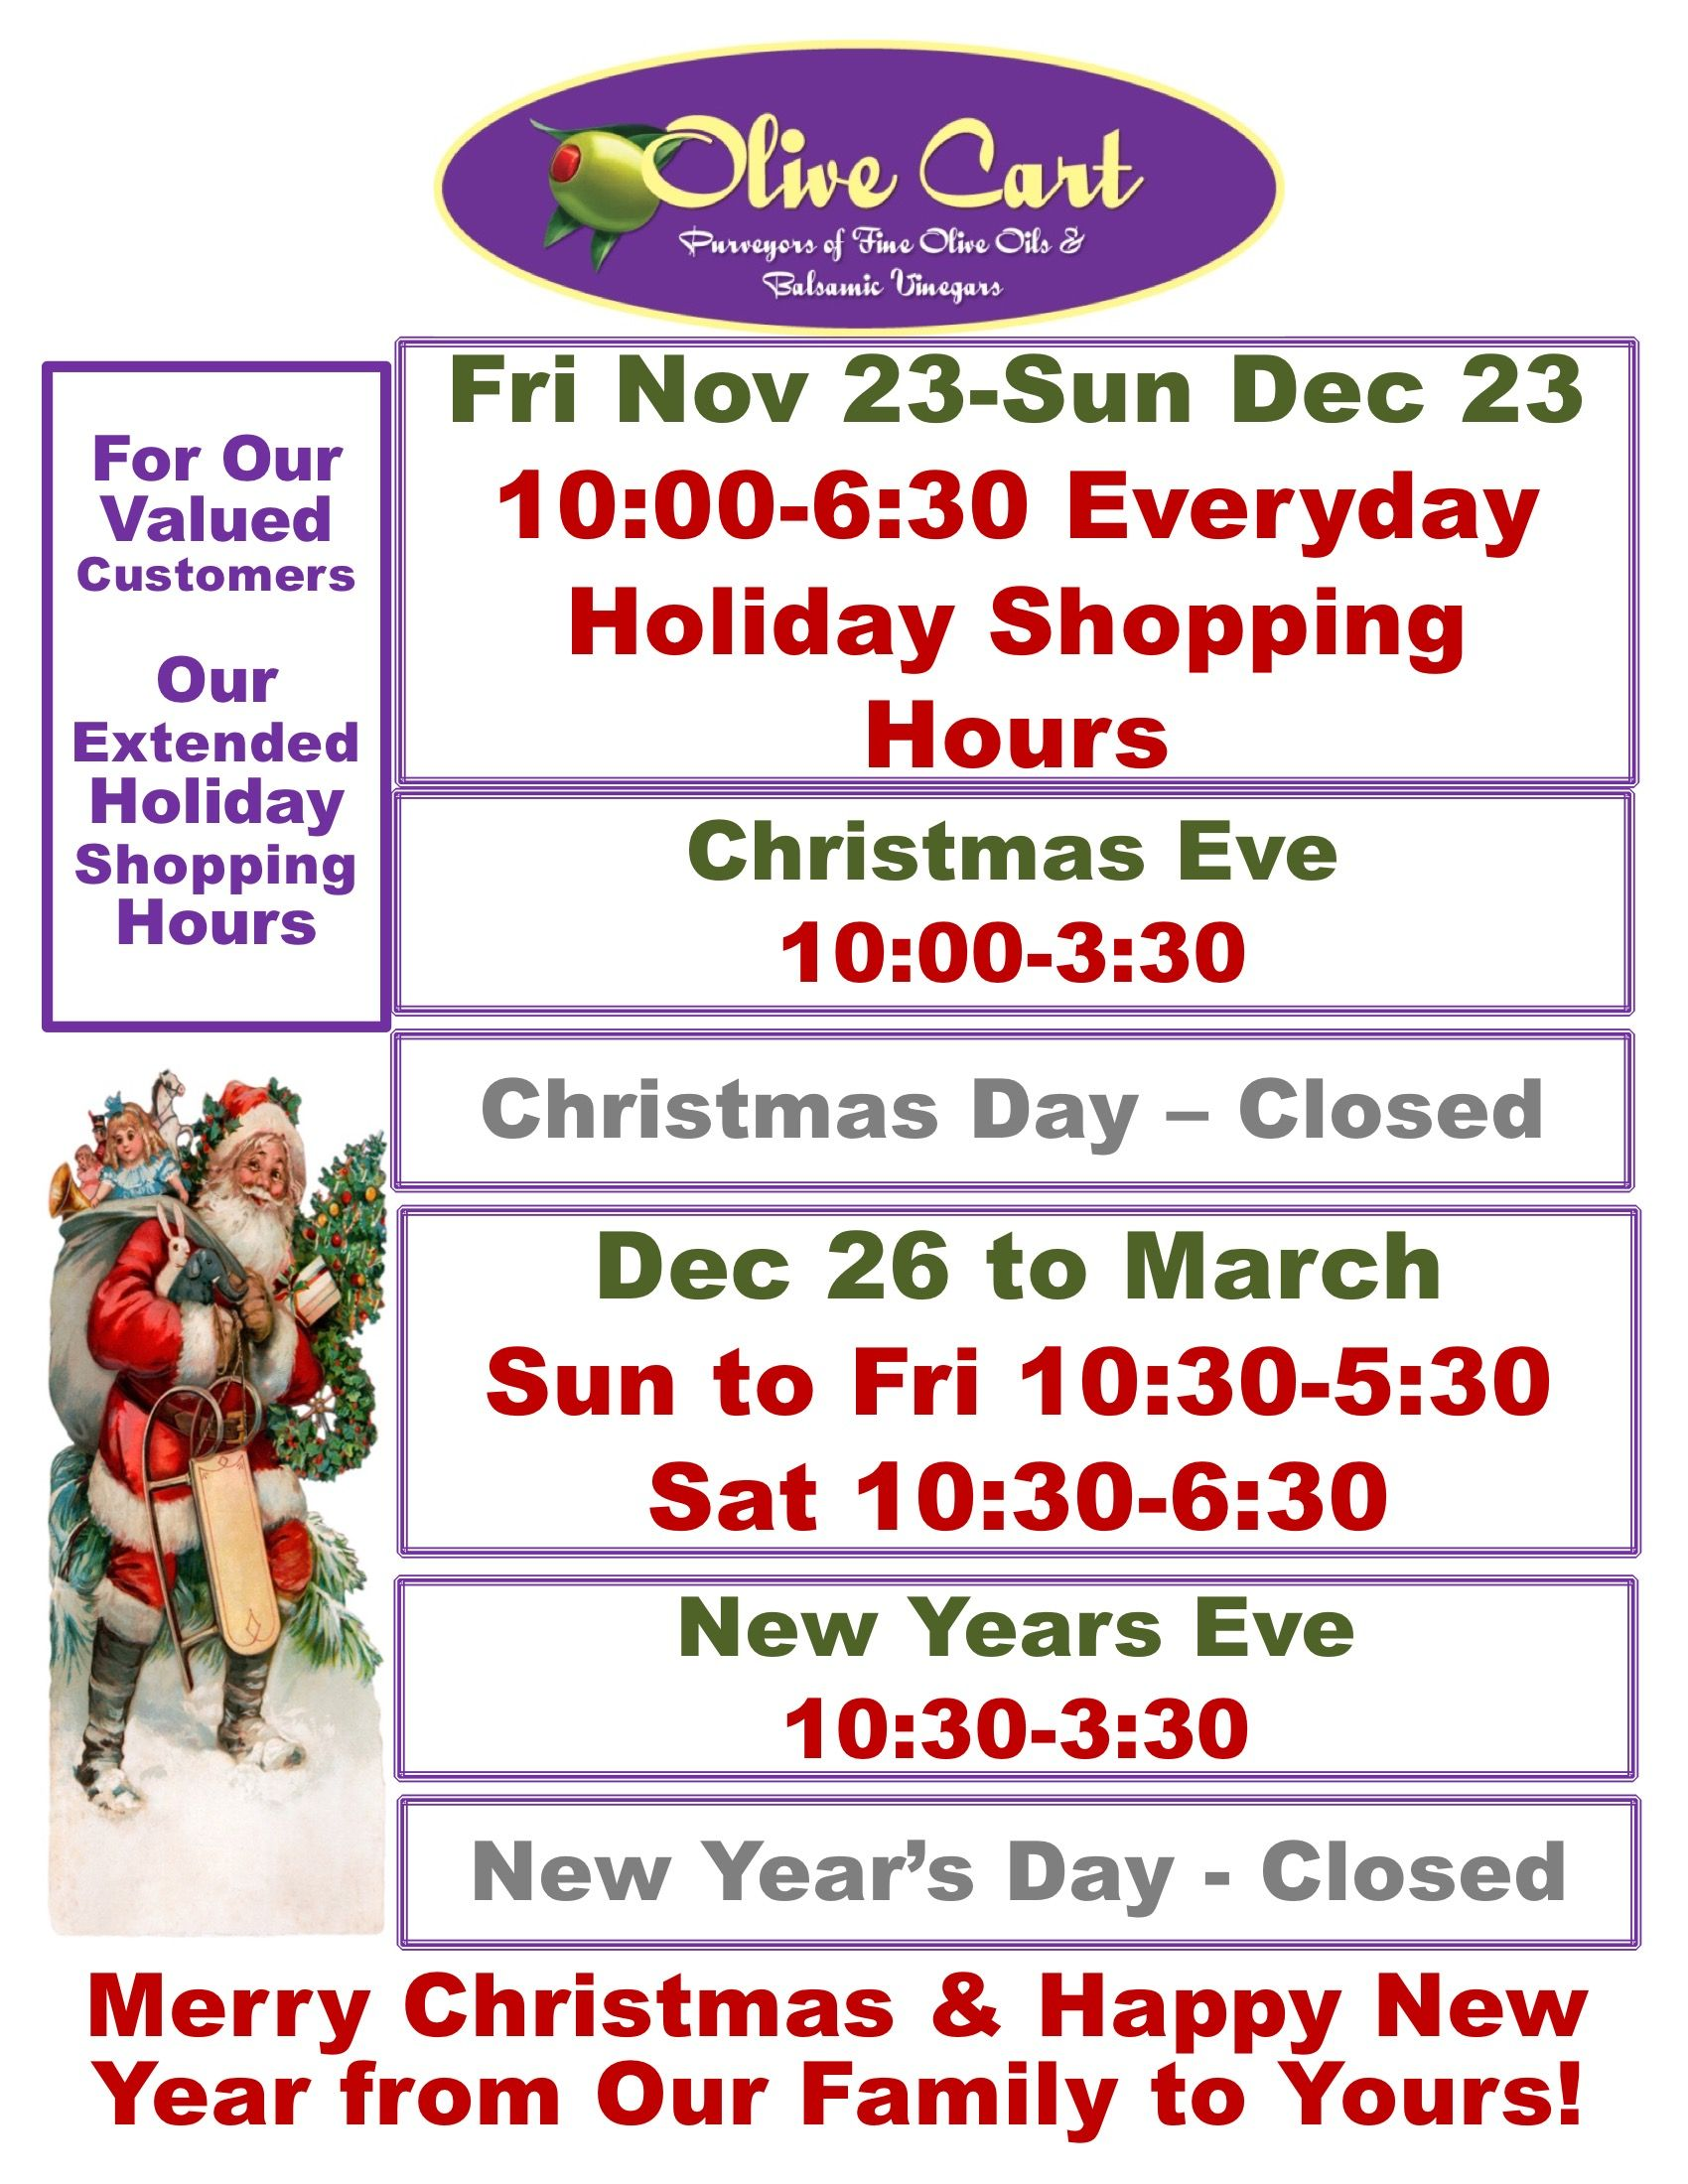 Only 25 shopping days till Christmas! We have the items